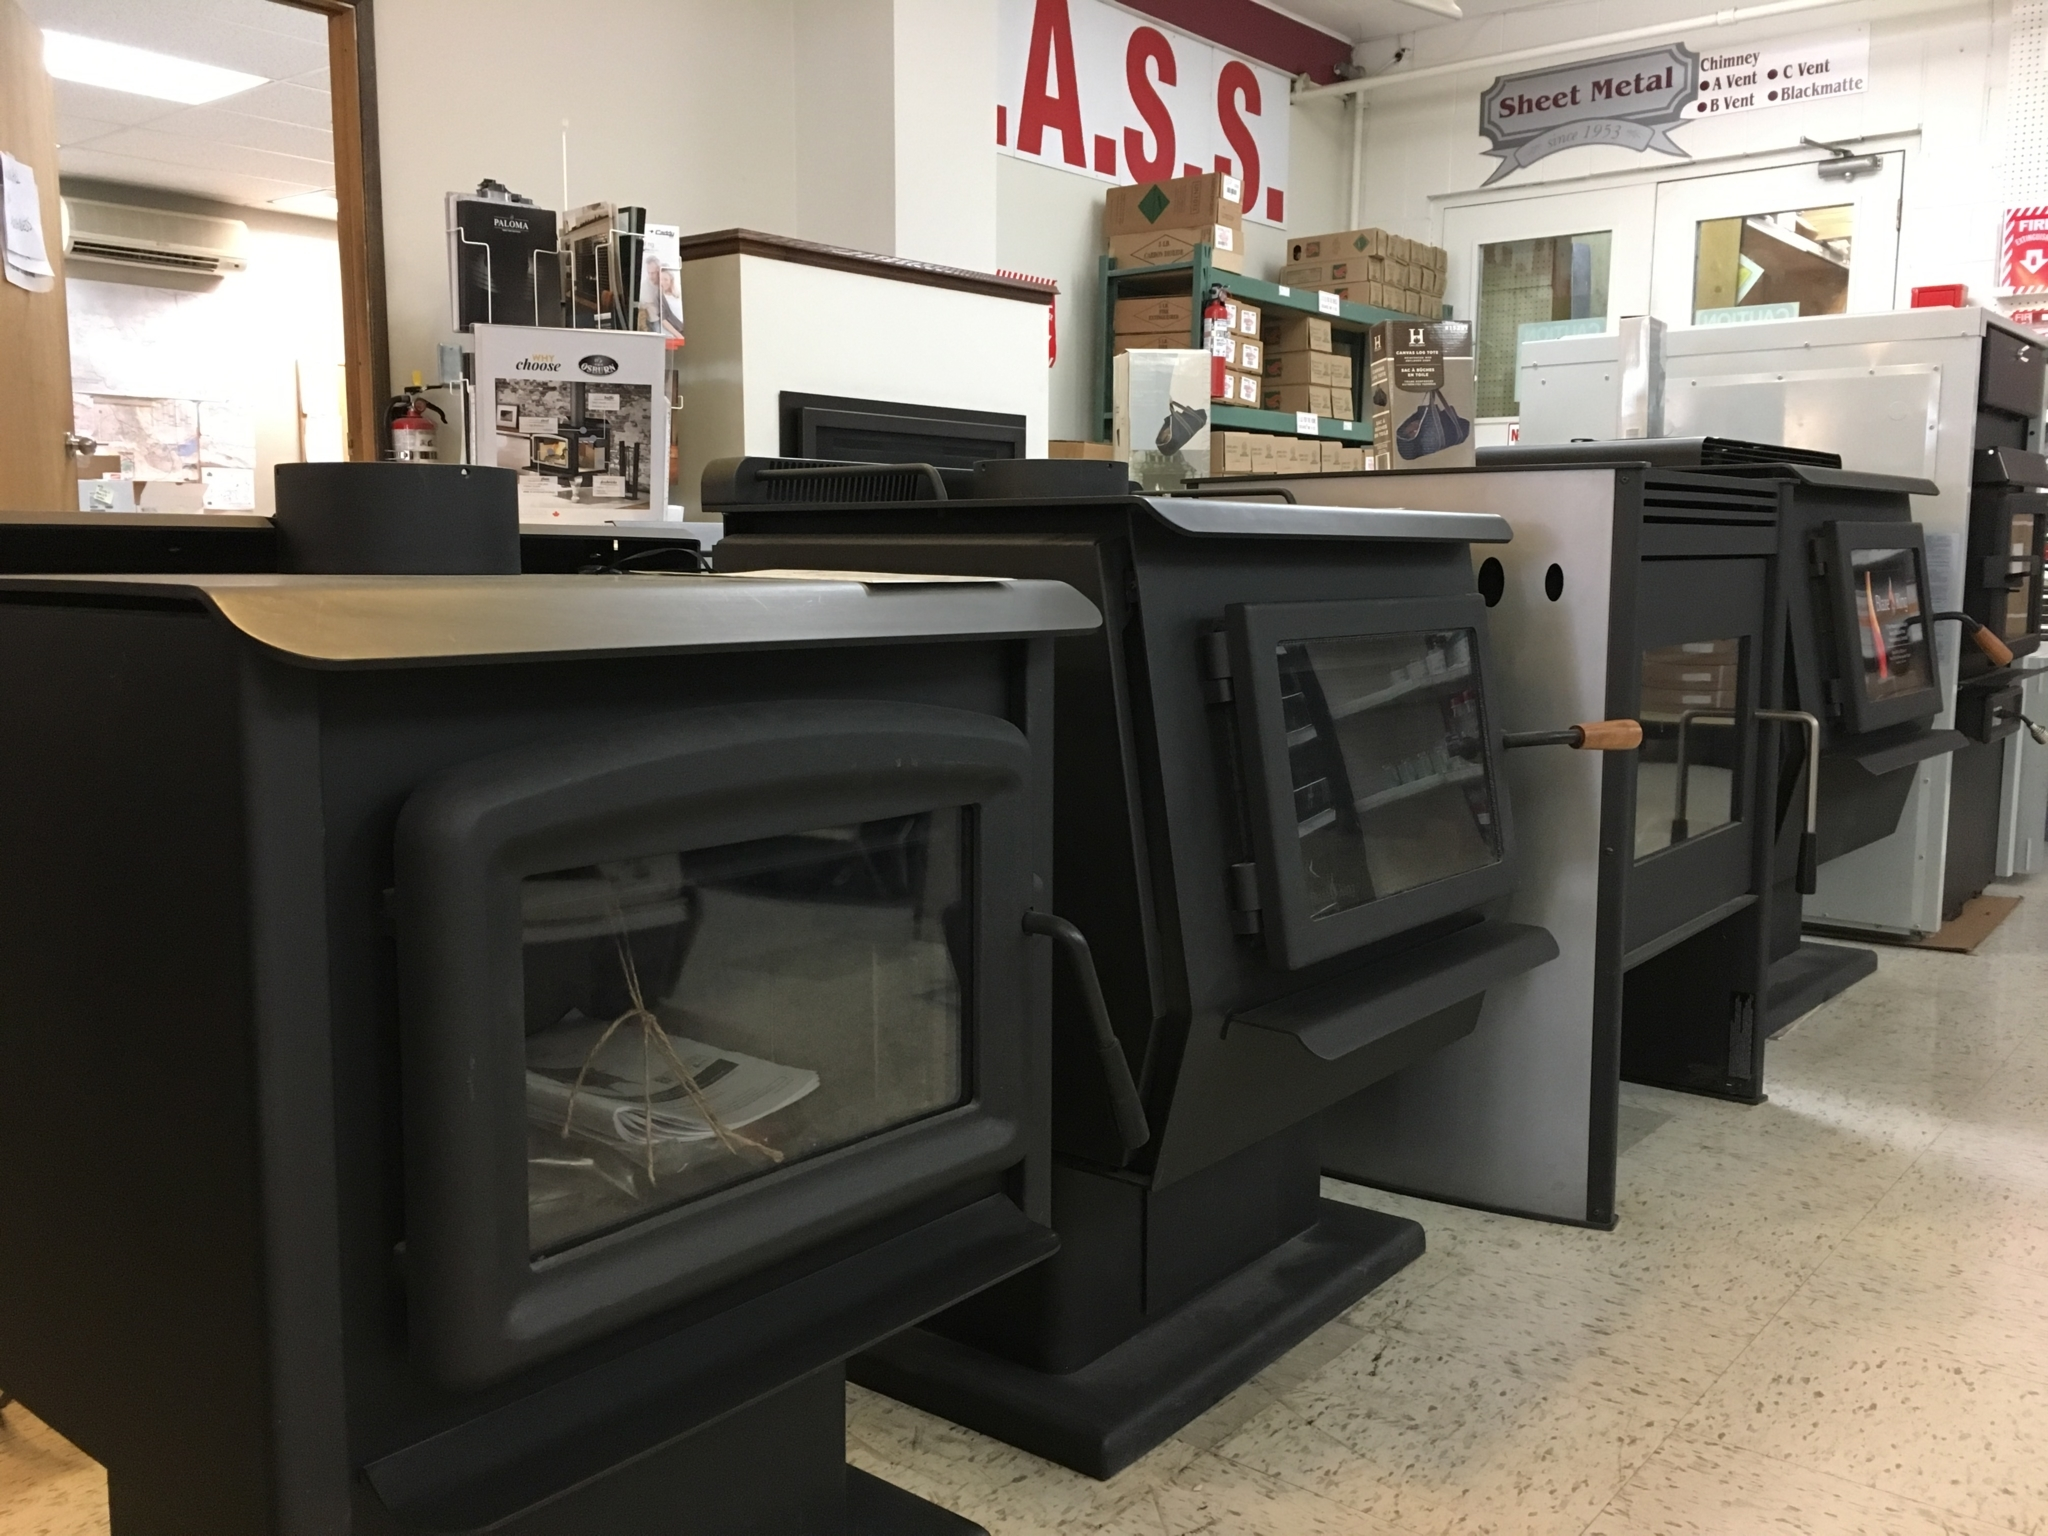 Burgess Plumbing Heating & Electrical Co Ltd in Williams Lake: wood stove selections